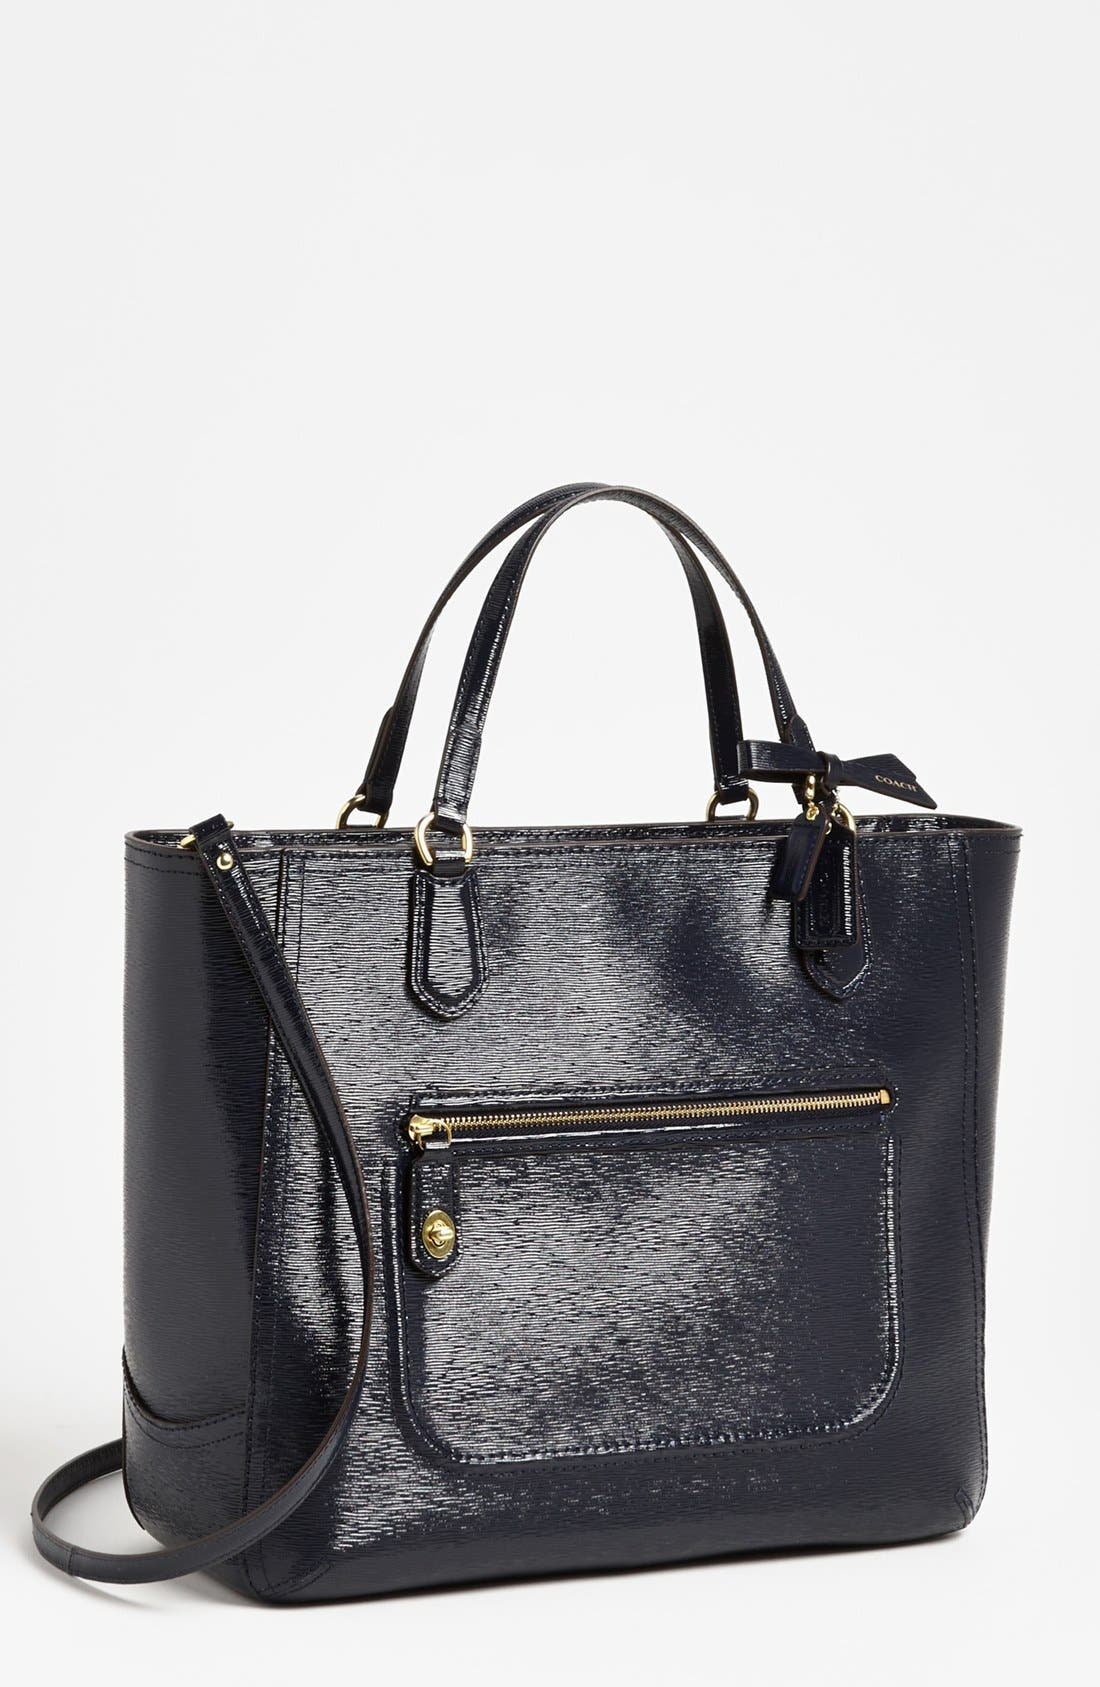 Alternate Image 1 Selected - COACH 'Poppy Blaire - Small' Patent Tote